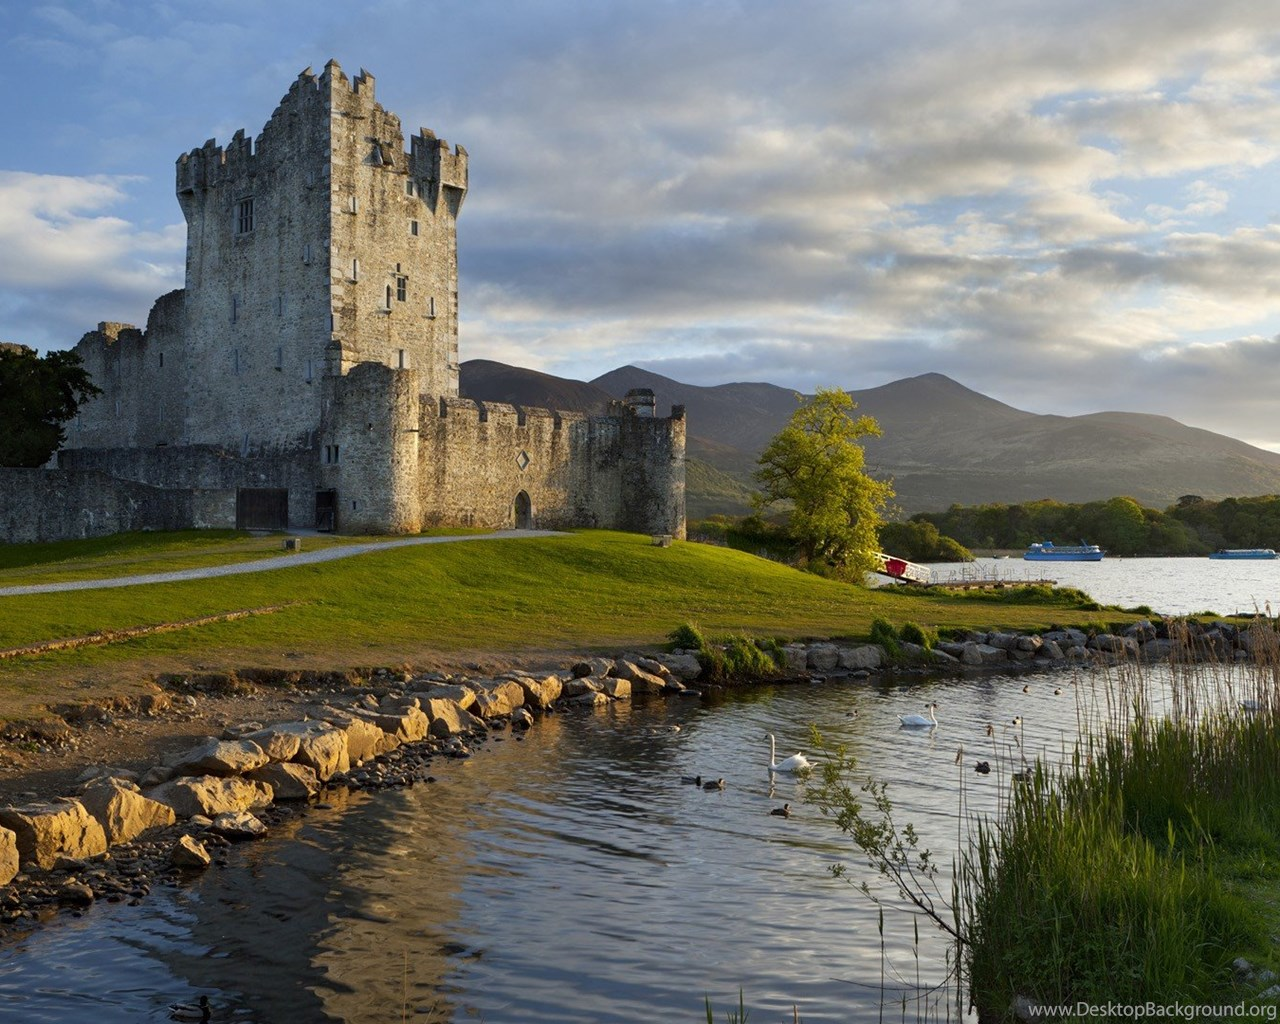 Awesome ireland wallpapers hd wallpapers desktop background - Ireland background wallpaper ...